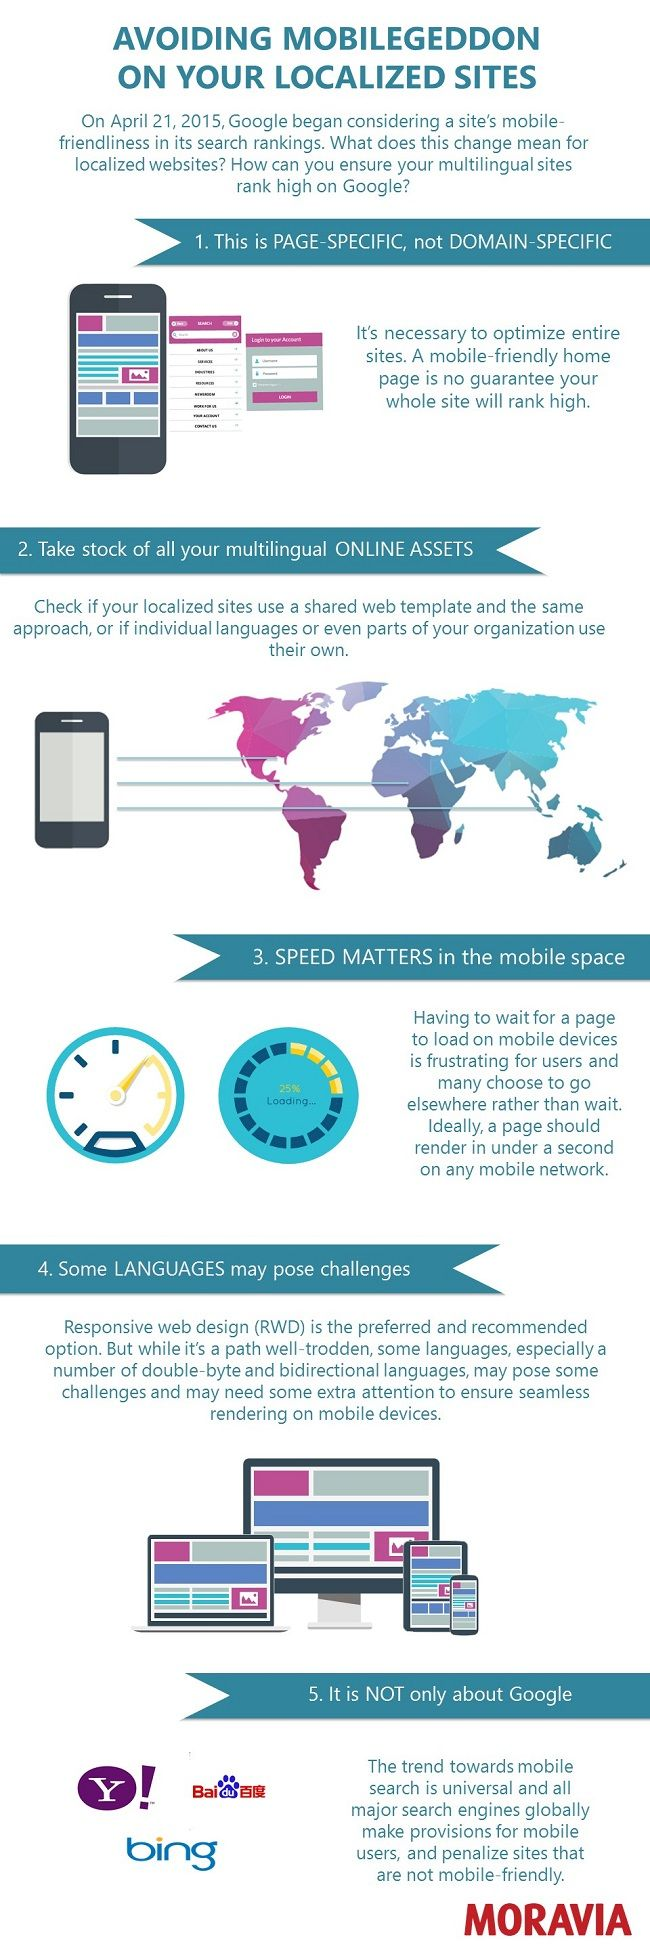 "Avoiding Mobilegeddon on Localized Sites Infographic - Moravia: For nearly two months, webmasters, SEO specialists, site owners and web marketers have been buzzing in anticipation of April 21, 2015, now commonly known as ""Mobilegeddon,"" or the day Google began considering a site's mobile-friendliness in its search rankings. #moraviait #infographic #mobilegeddon"